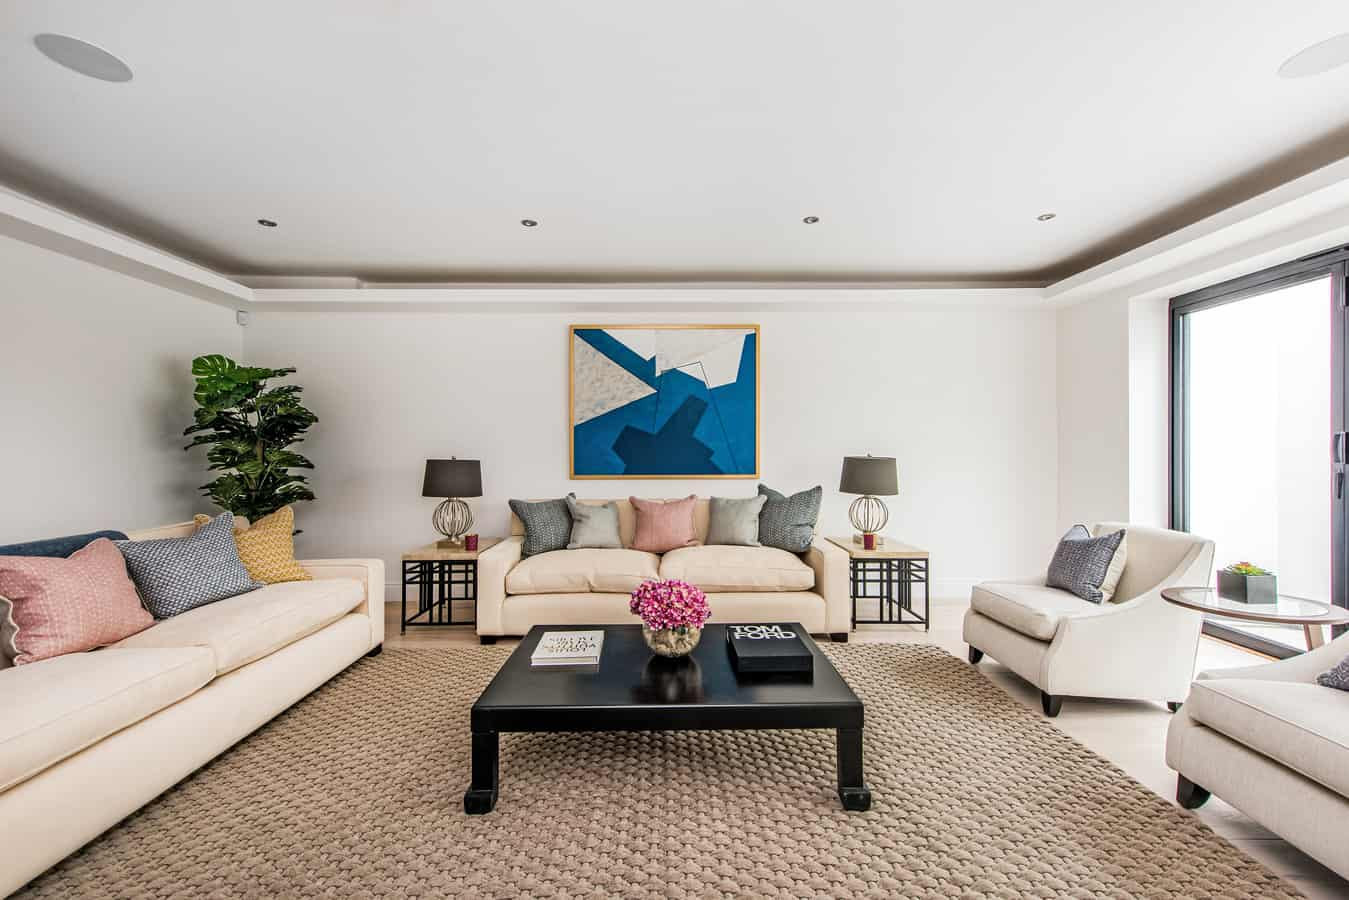 Finlay-Street-home-staged-by-cullum-design-london-uk-56-16